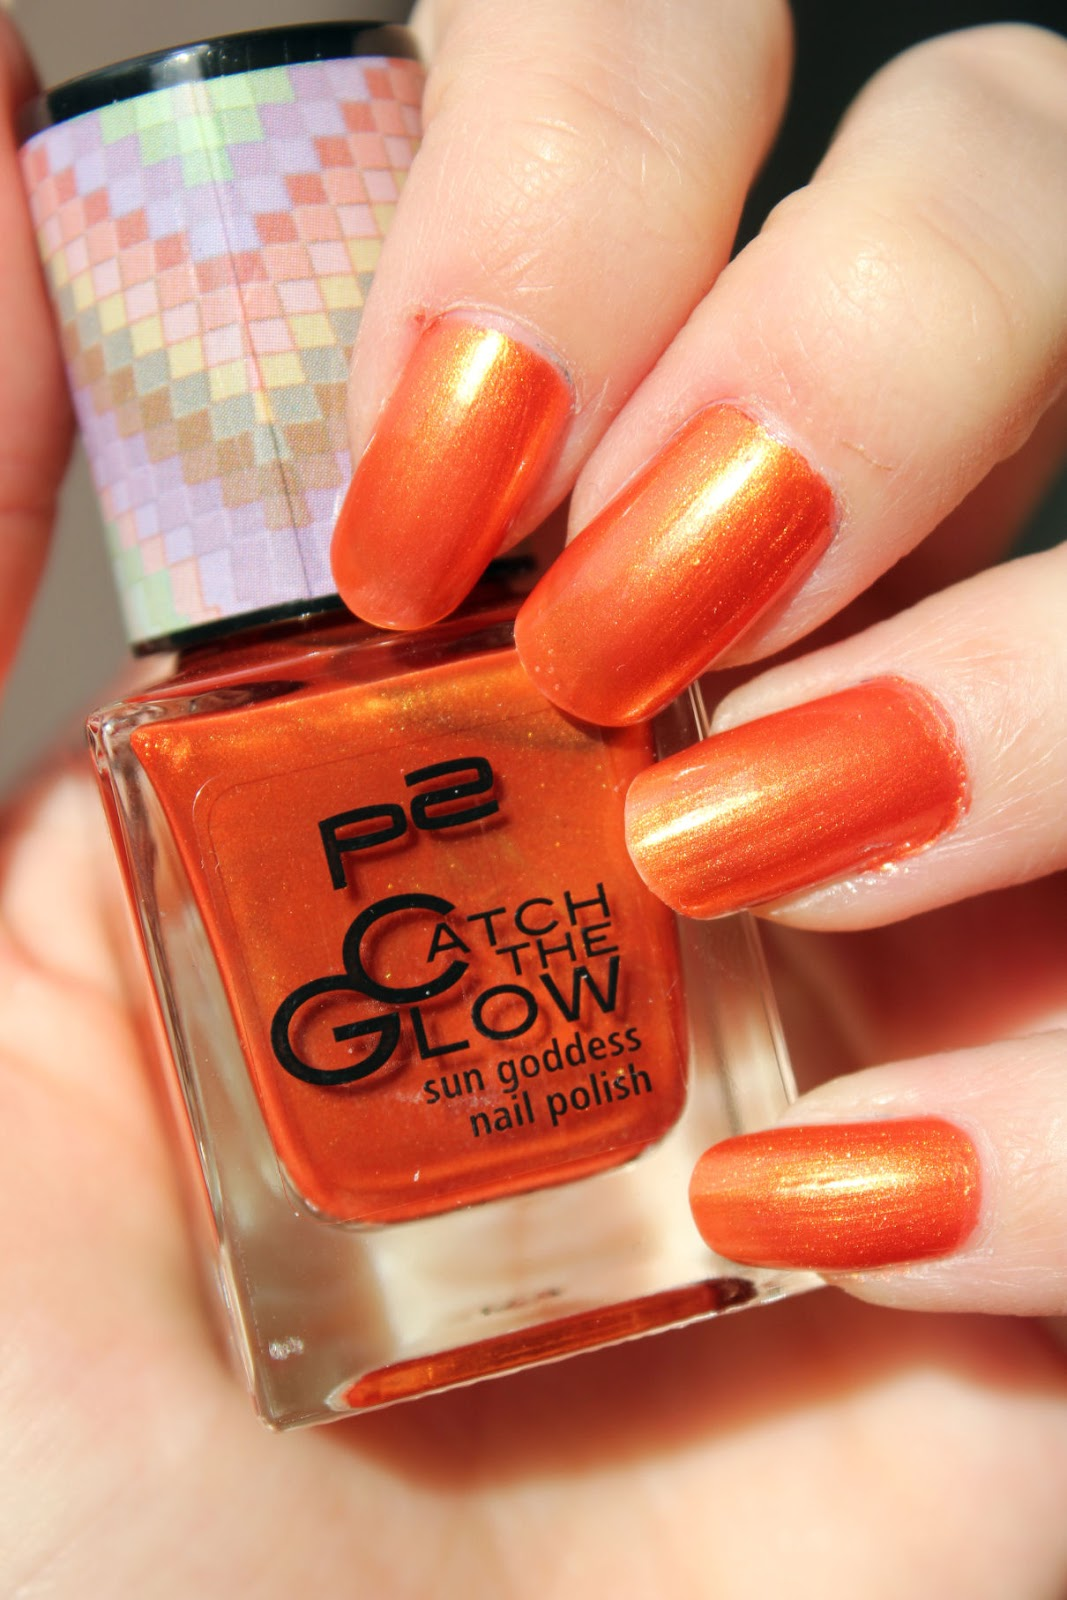 http://lacquediction.blogspot.de/2014/03/p2-catch-glow-le-swatches-aller-lacke.html